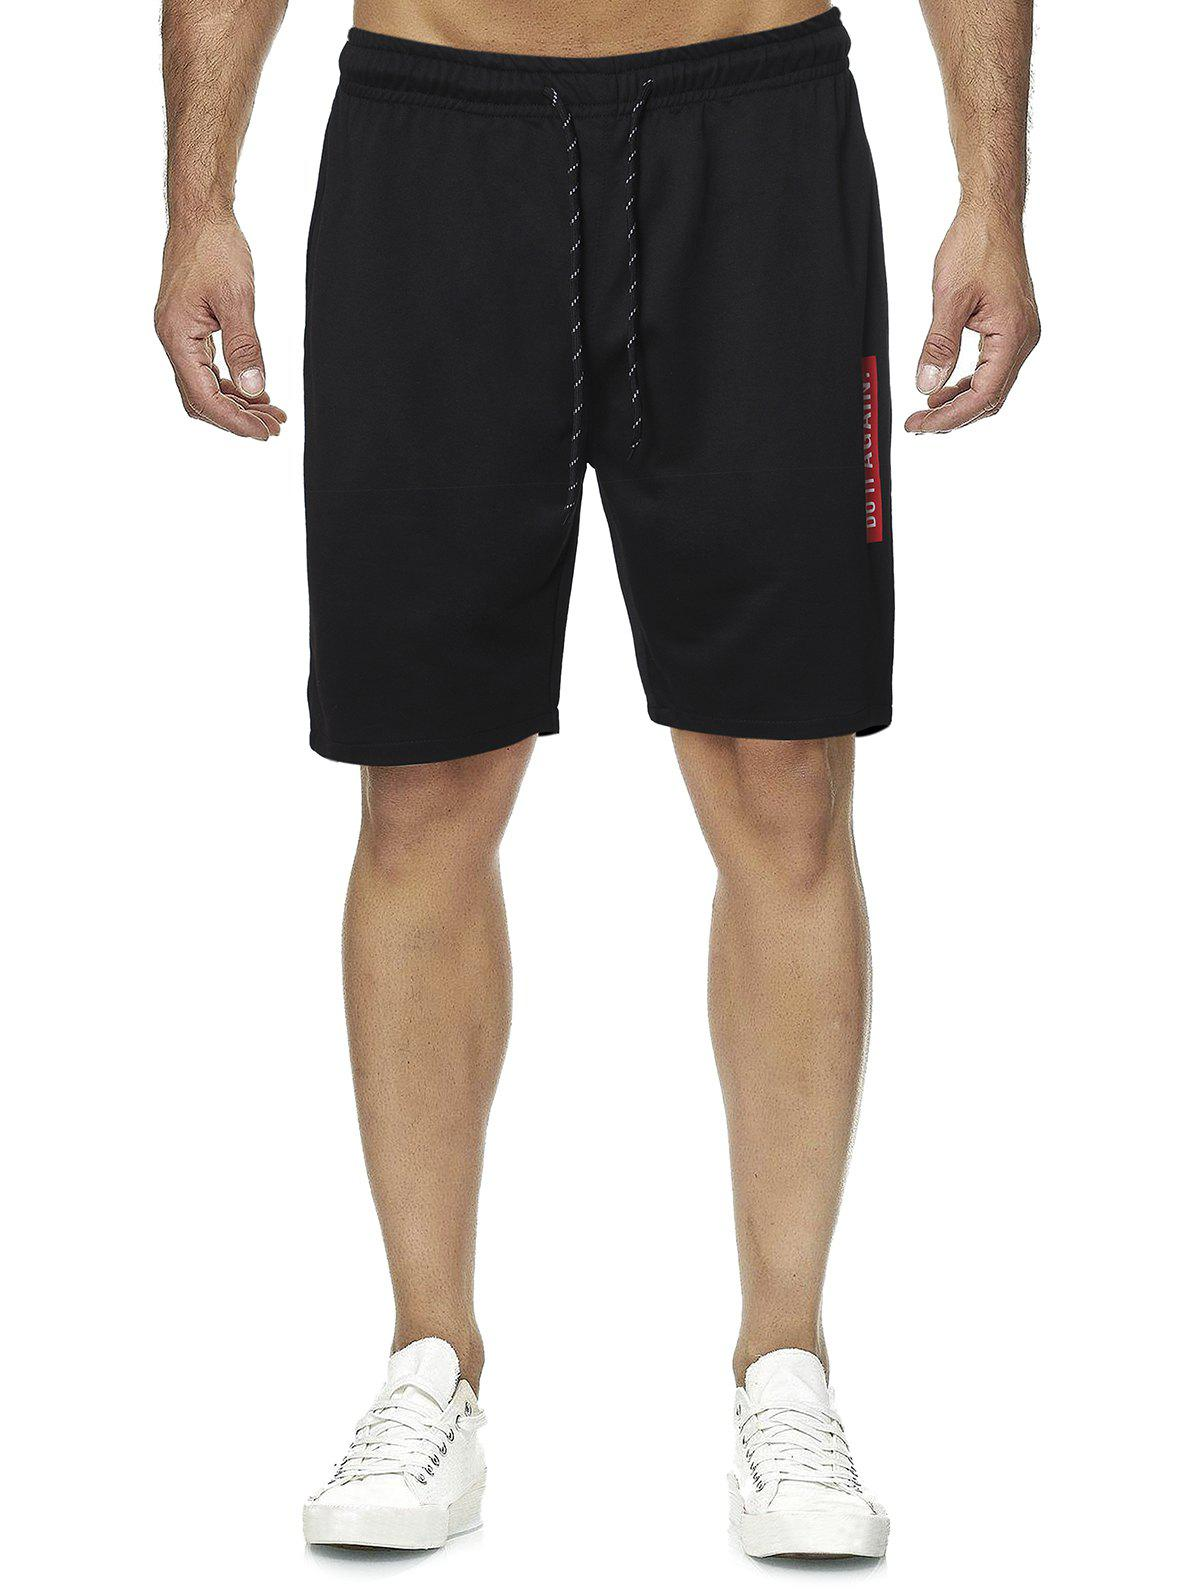 Letter Graphic Casual Straight Shorts - BLACK L